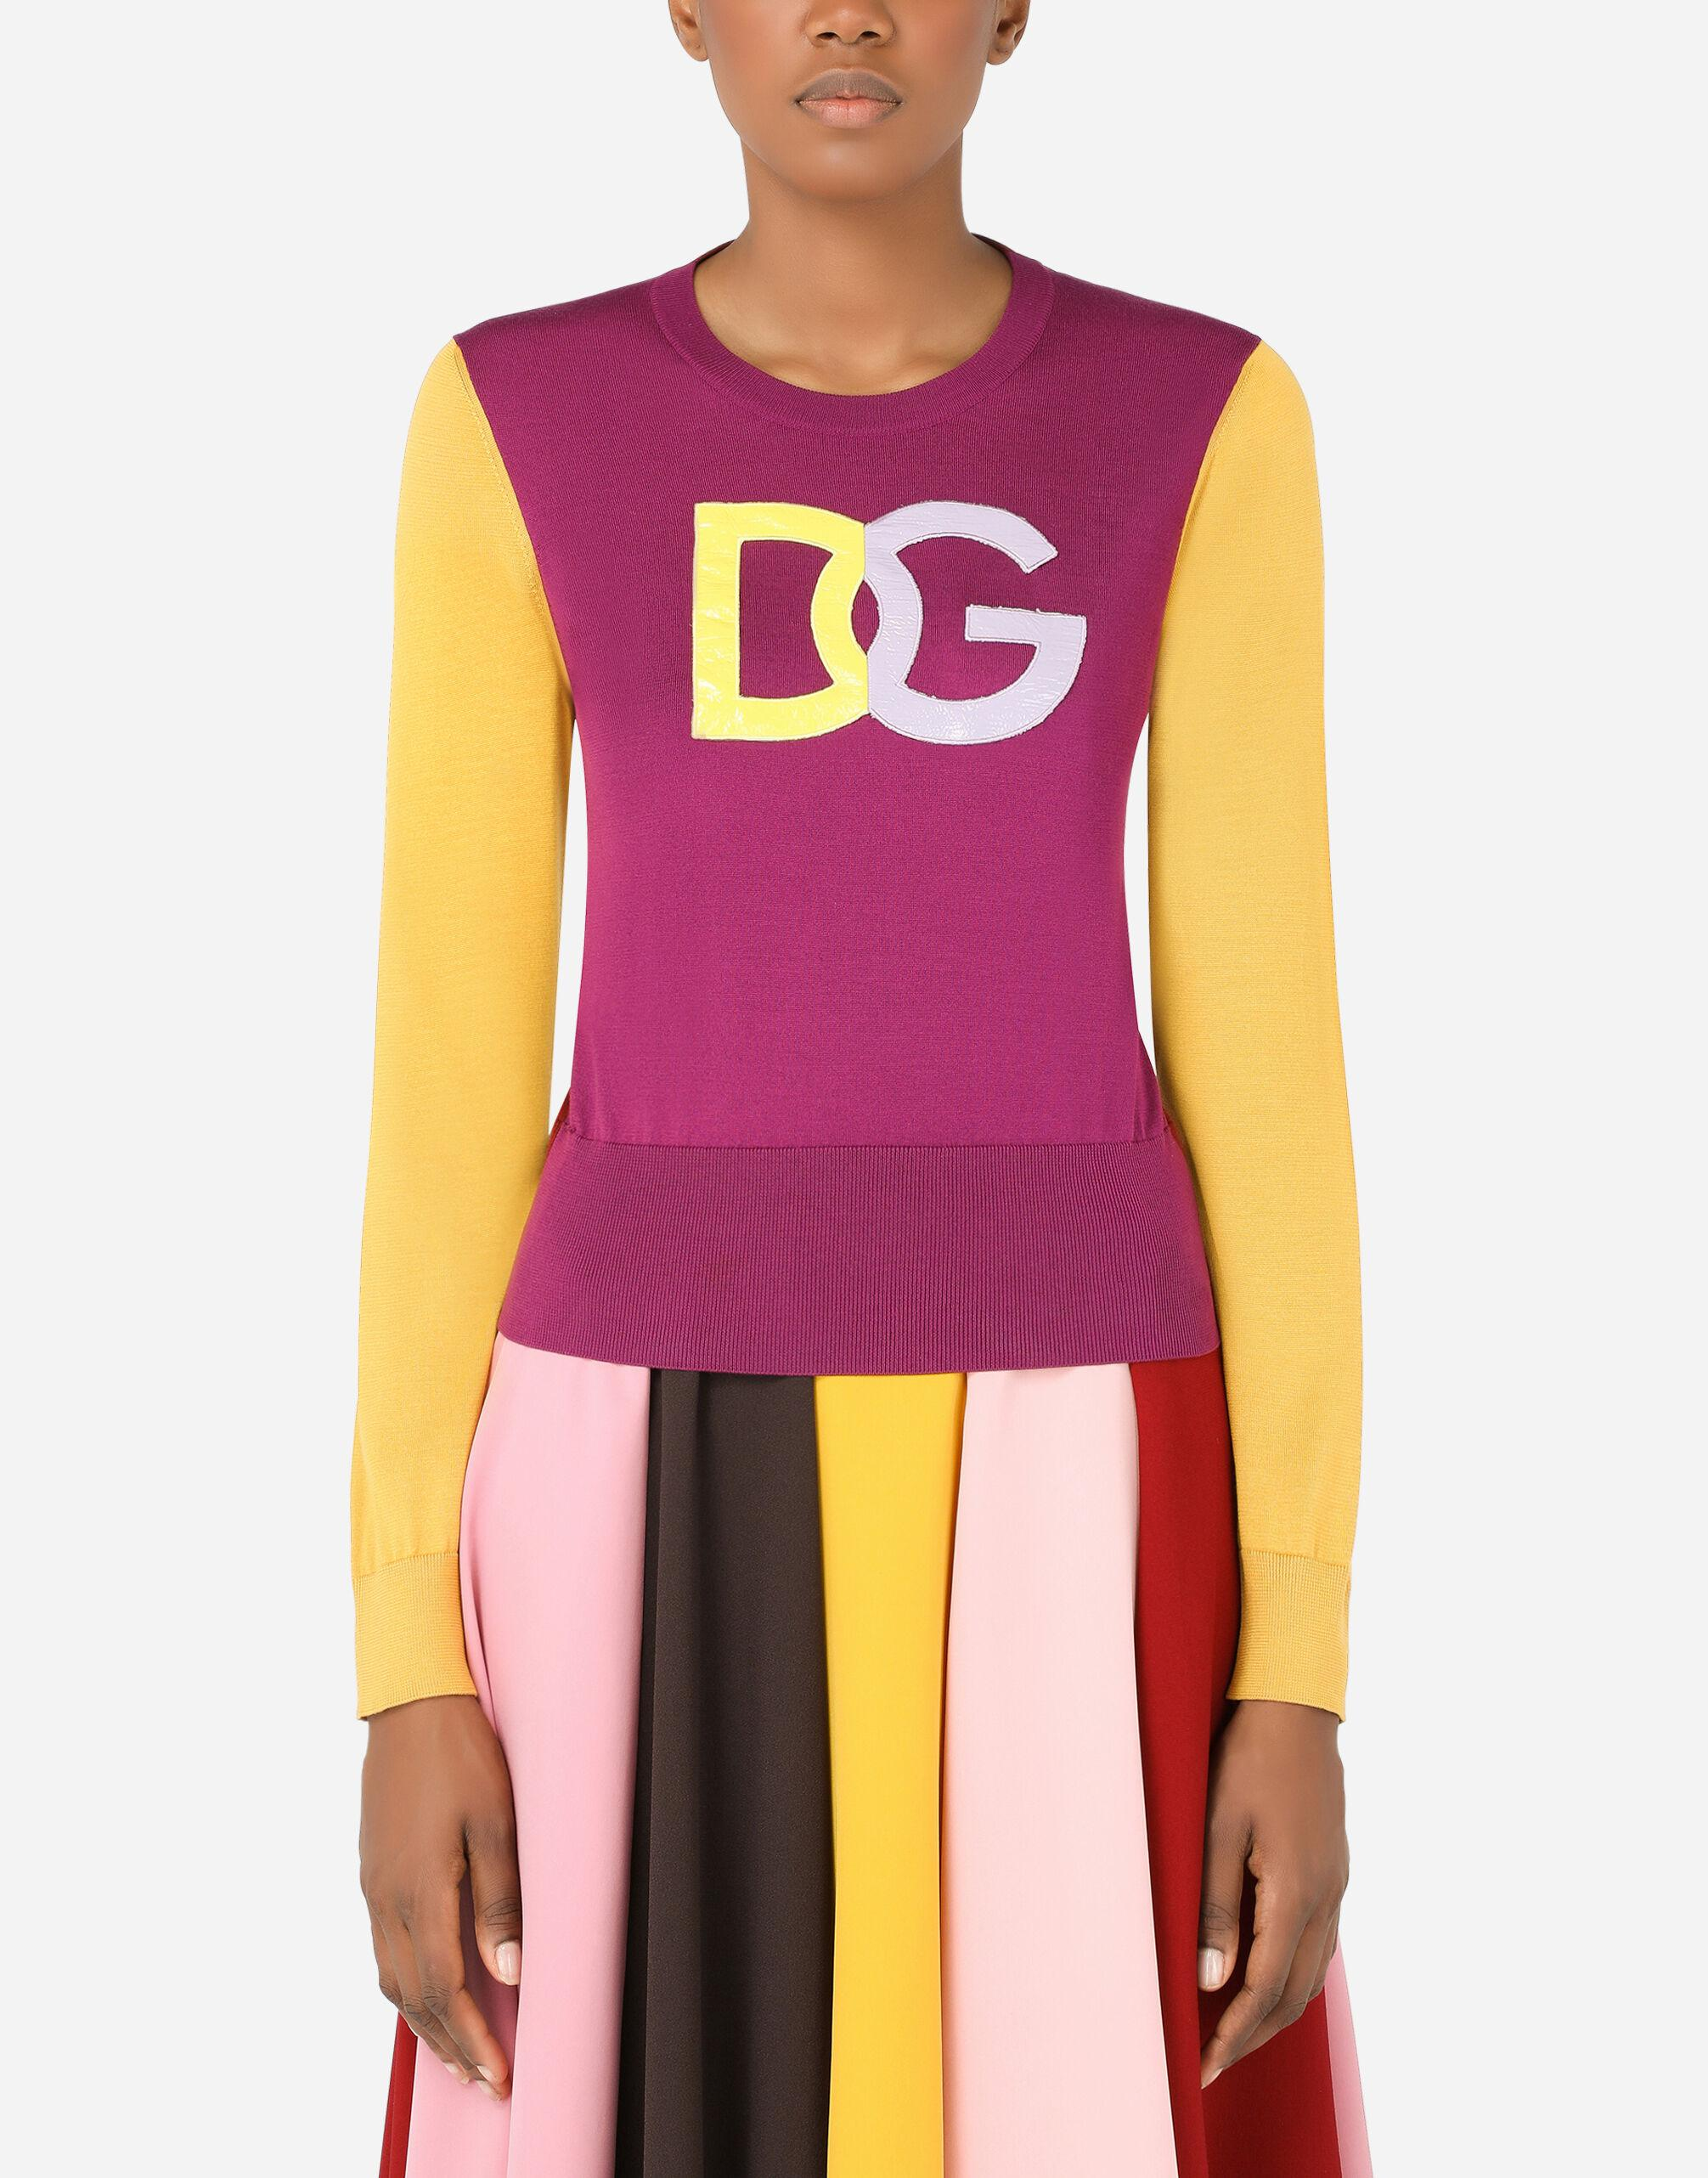 Multi-colored silk sweater with patent leather DG patch